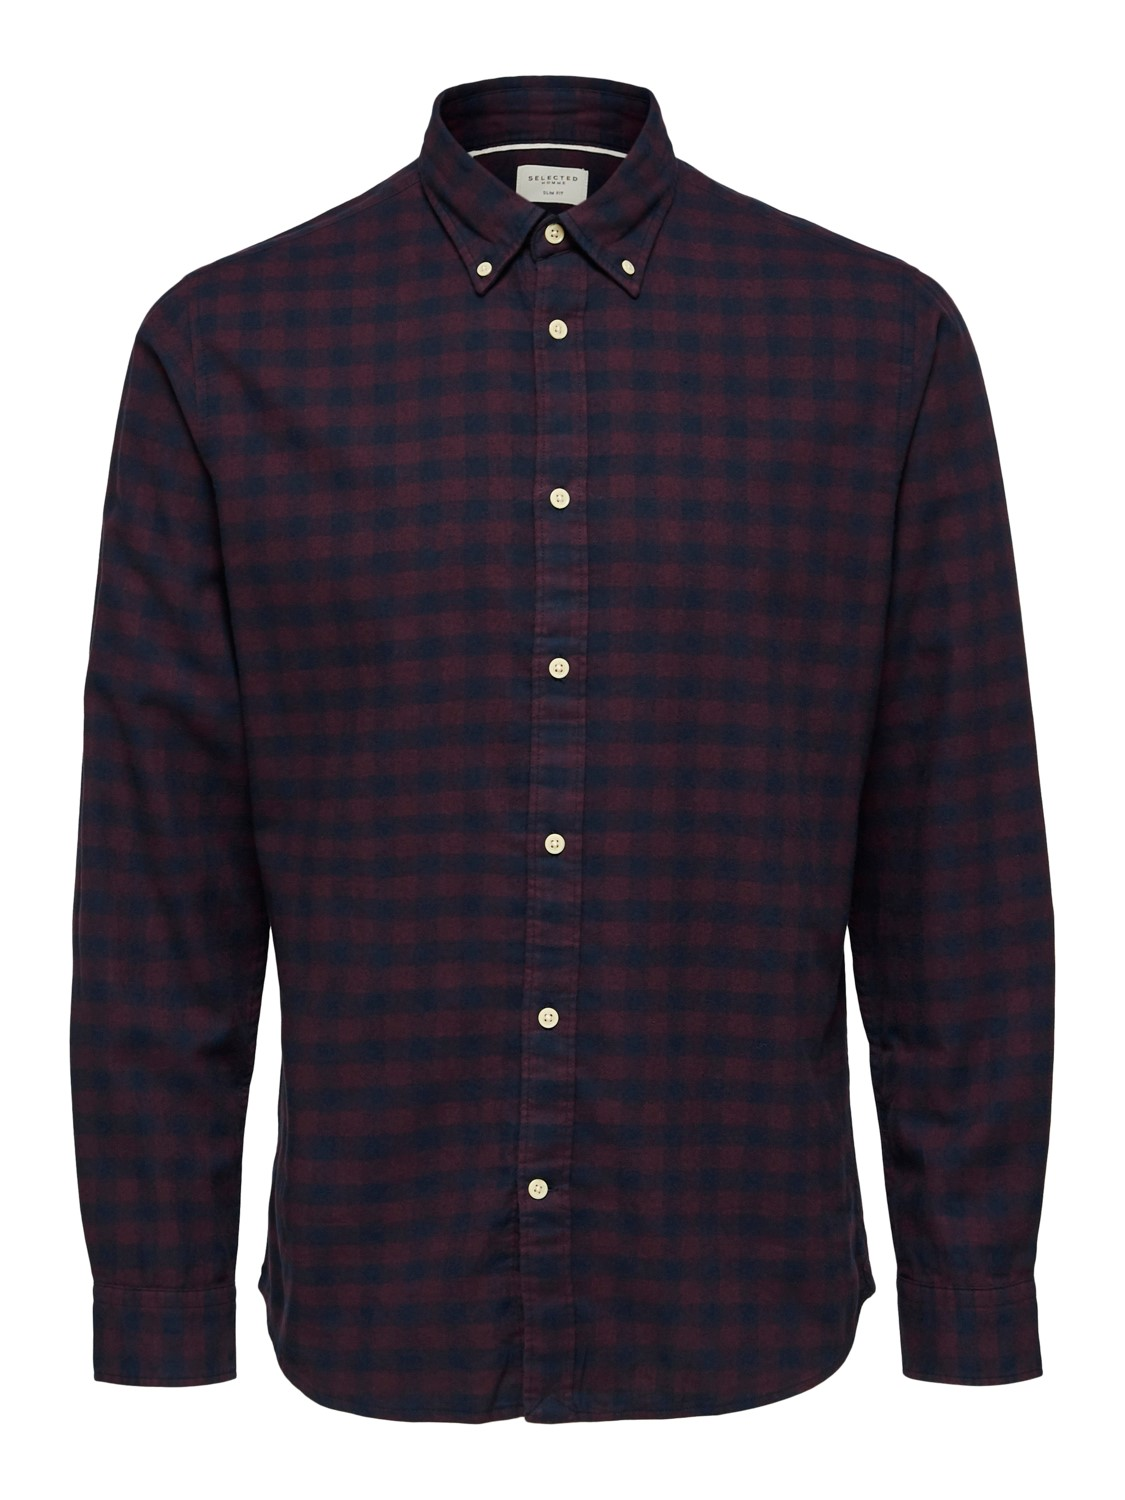 Selected Skjorte - Slhslimflannel shirt port royal/big check | Gate36 Hobro